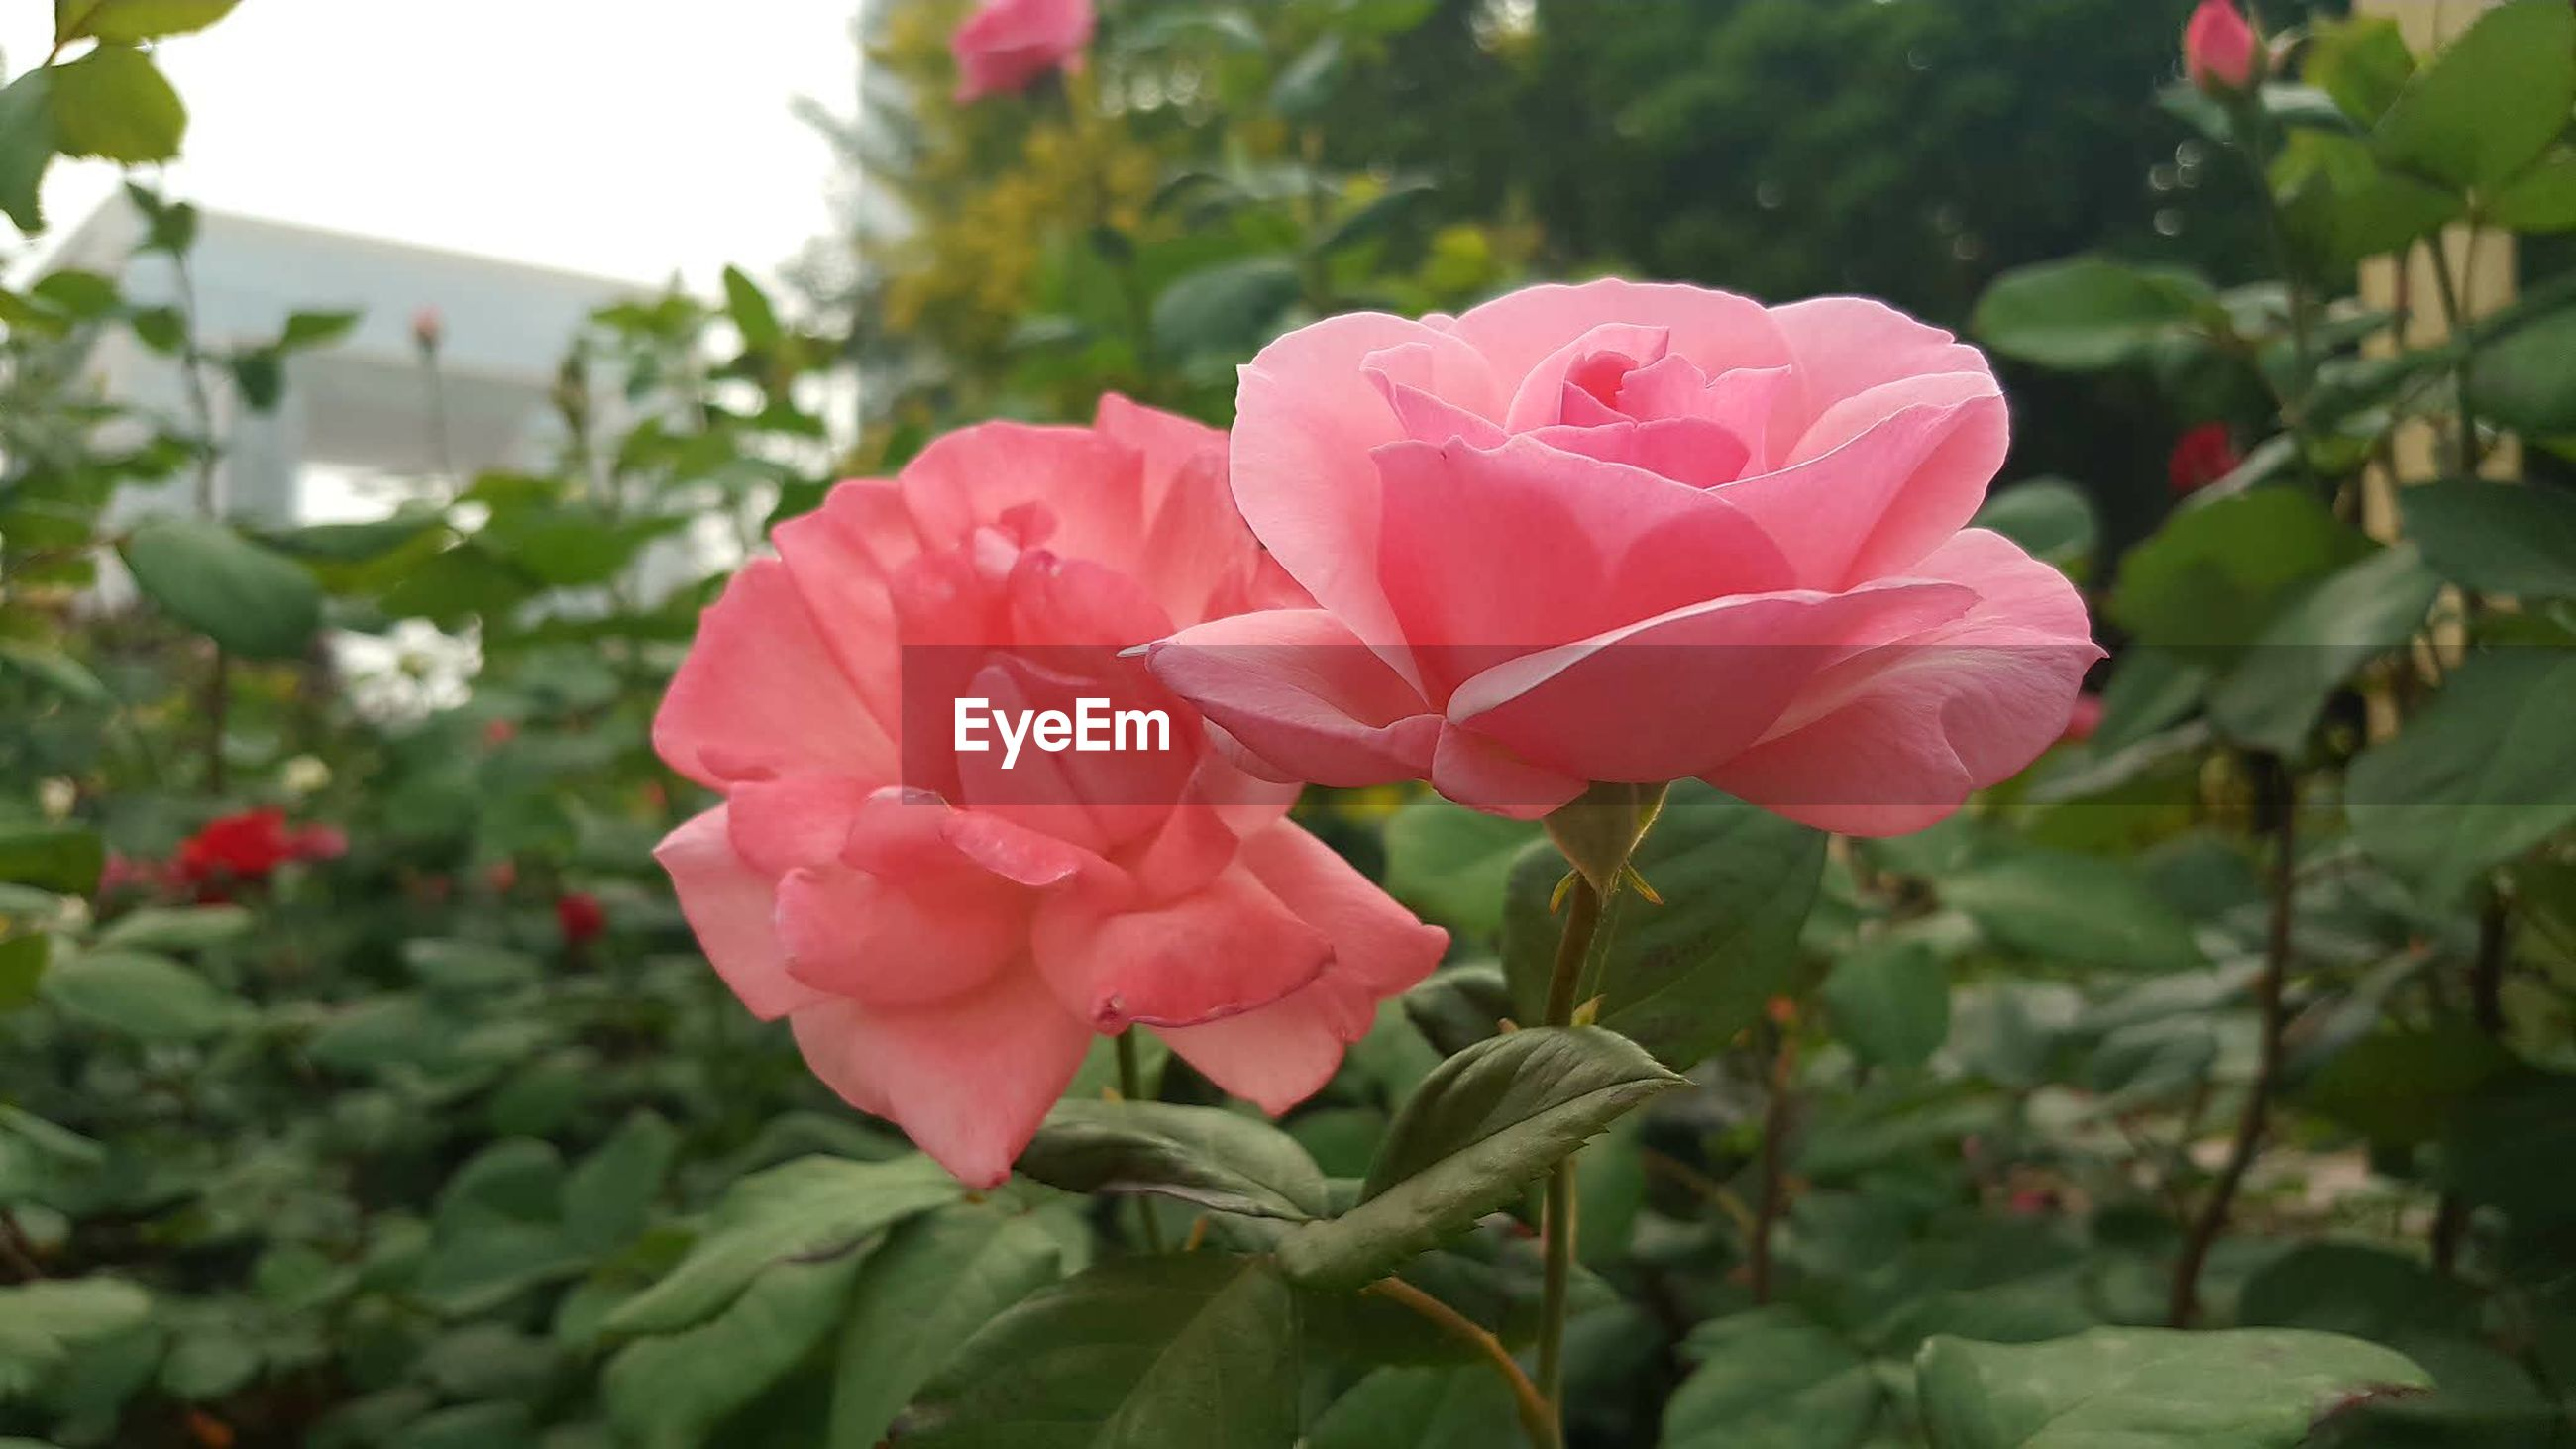 flower, petal, pink color, growth, fragility, nature, beauty in nature, plant, blooming, freshness, flower head, no people, focus on foreground, day, outdoors, close-up, leaf, periwinkle